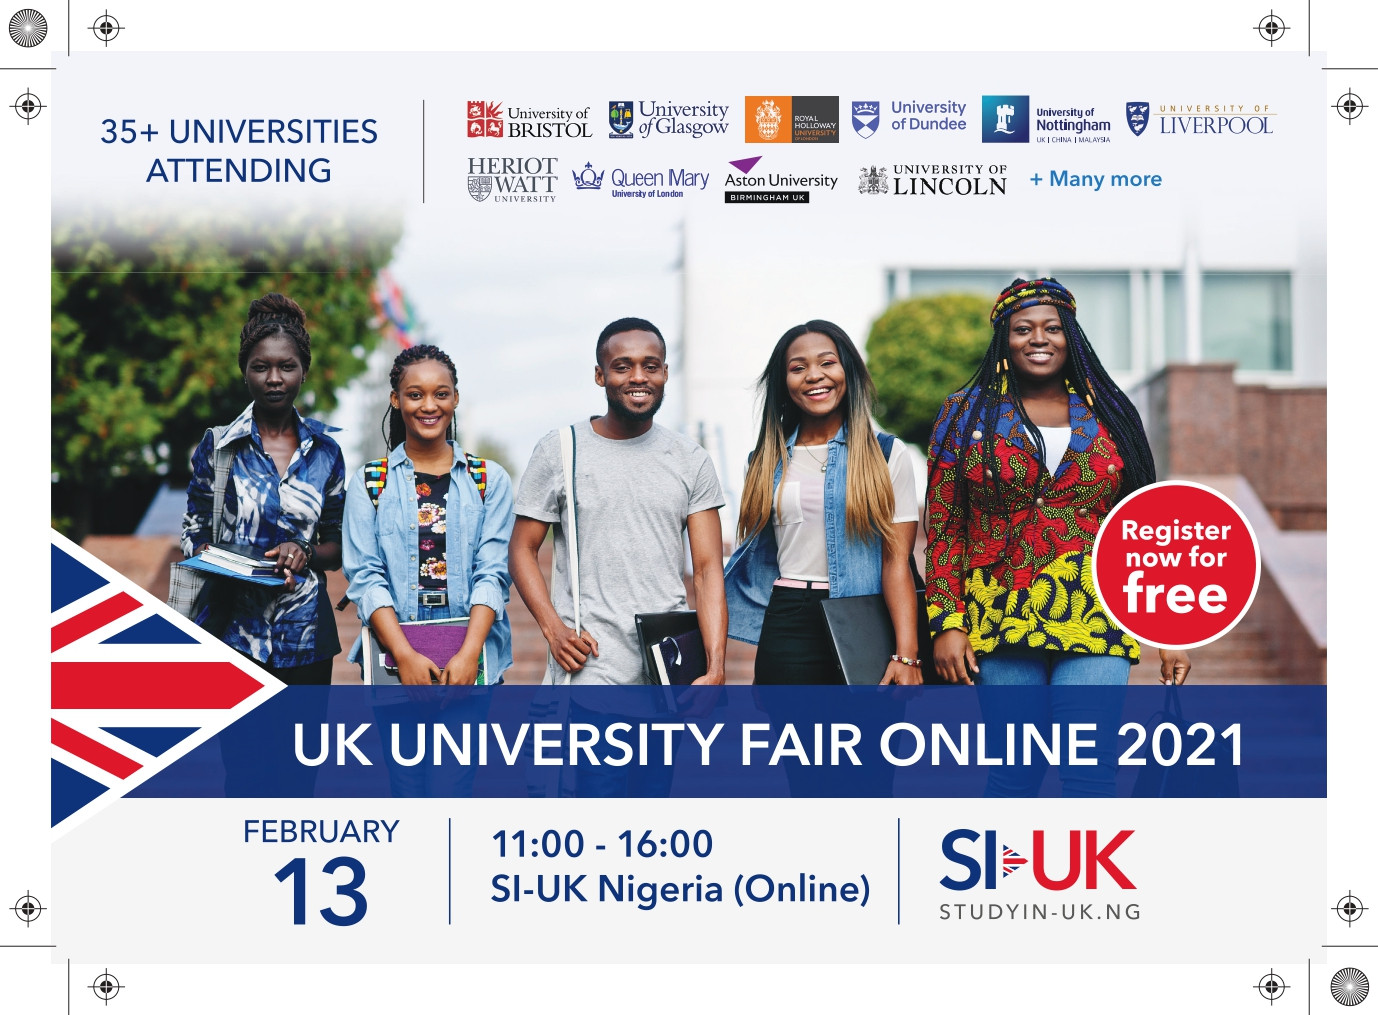 2 Years Post Study work opportunities now available in the UK Start your studies in September 2021